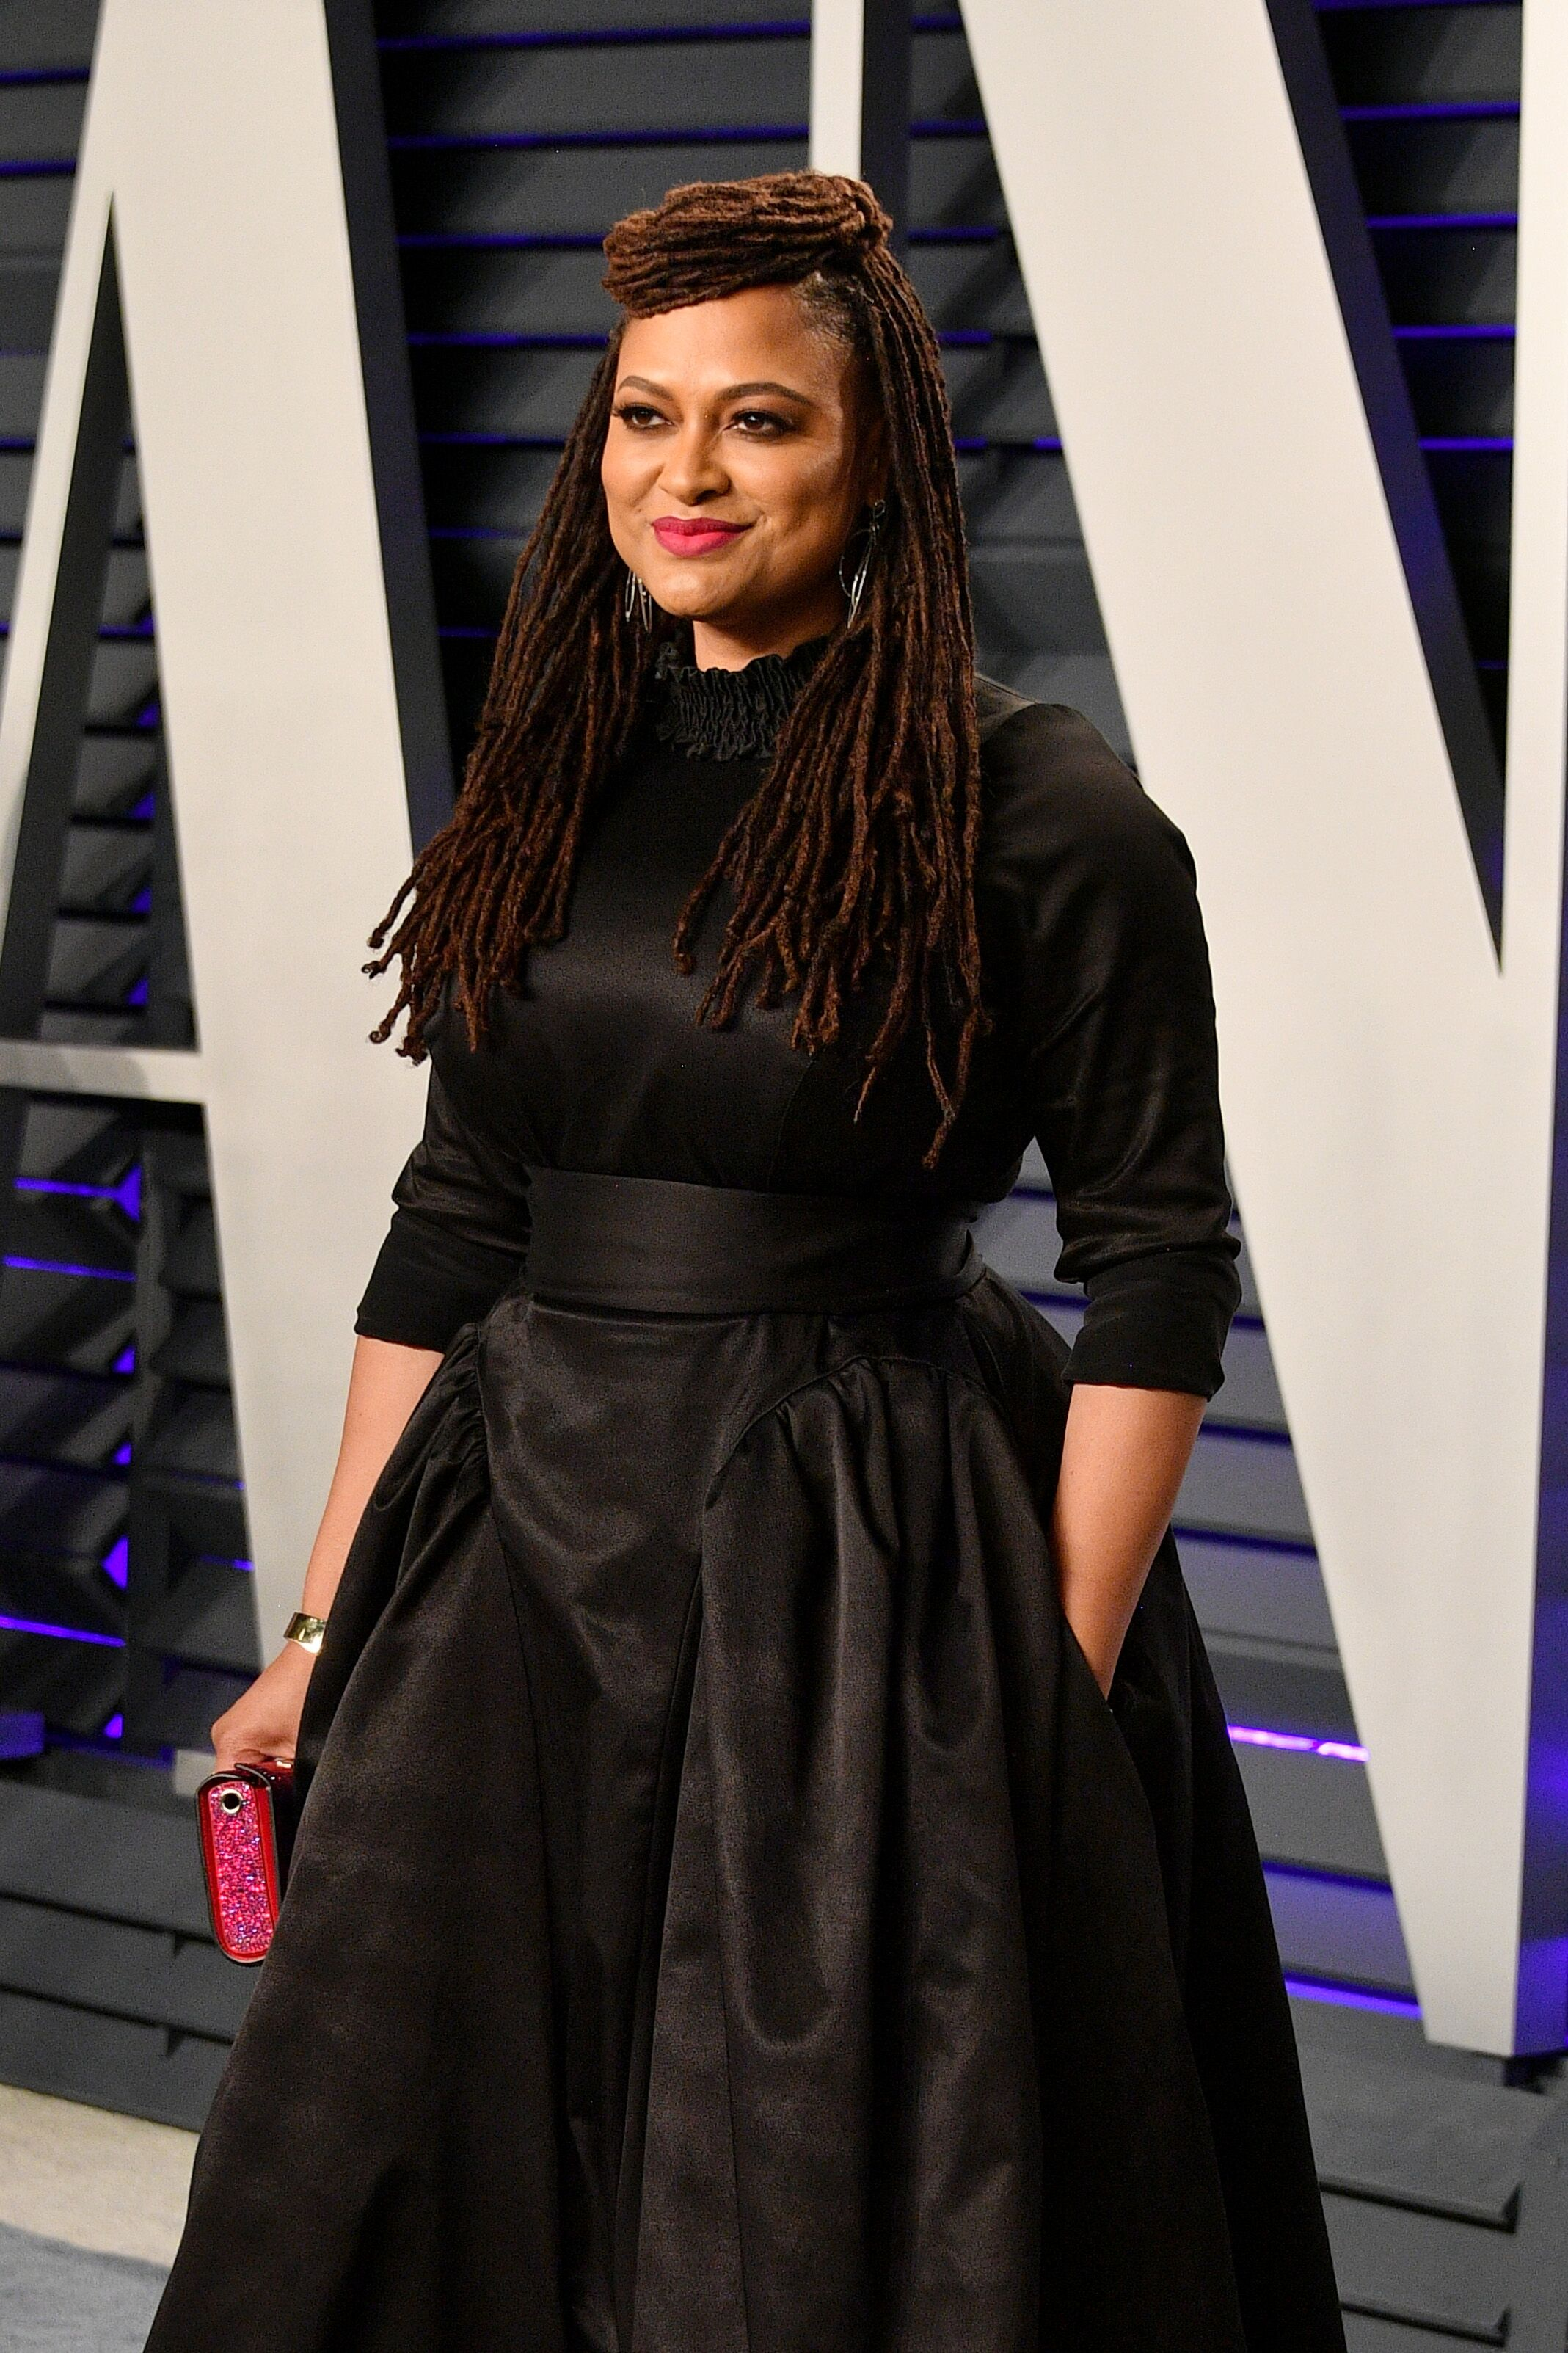 Ava DuVernay at the 2019 Vanity Fair Oscar Party on February 24, 2019. | Source: Getty Images